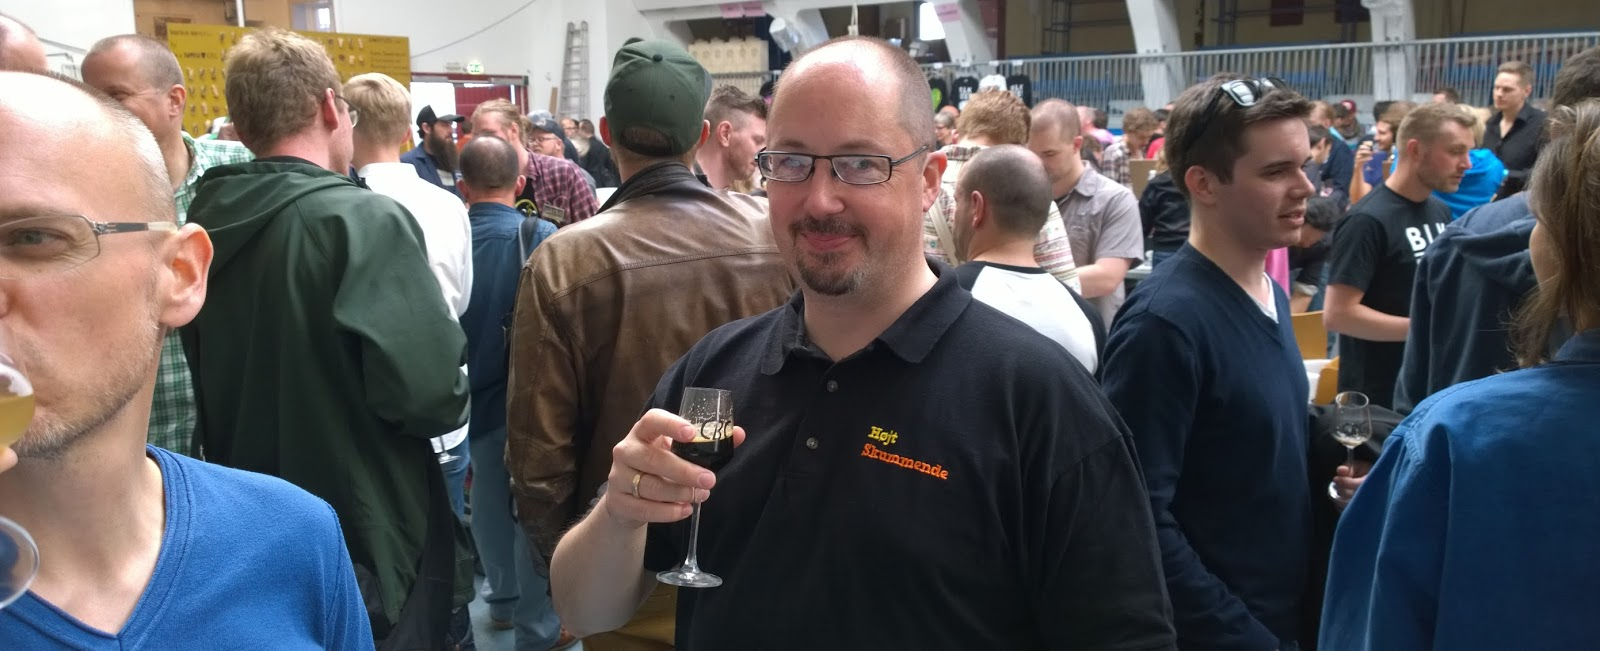 Brian Lund på Copenhagen Beer Celebration 2014